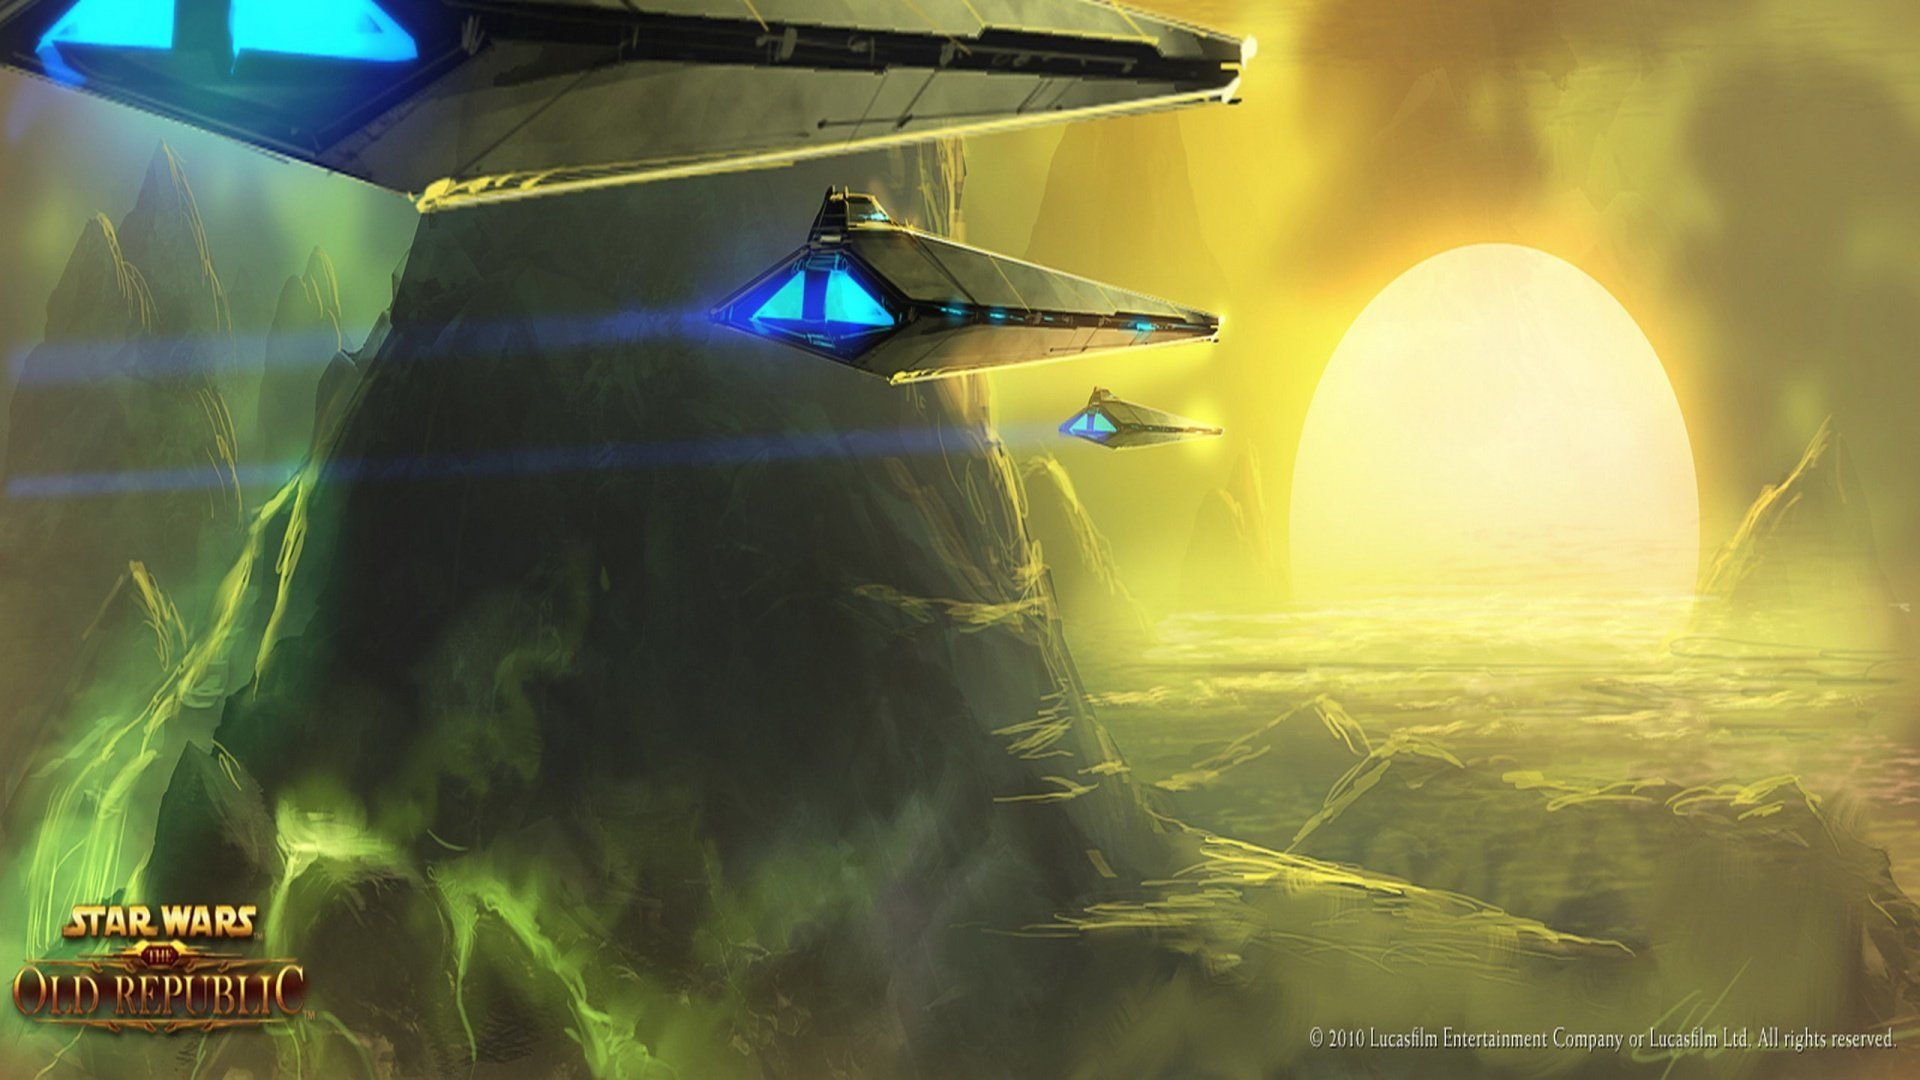 Star Wars The Old Republic Concept Art Wallpaper Wallpaper Star Wars The Old The Old Republic Star Wars Concept Art